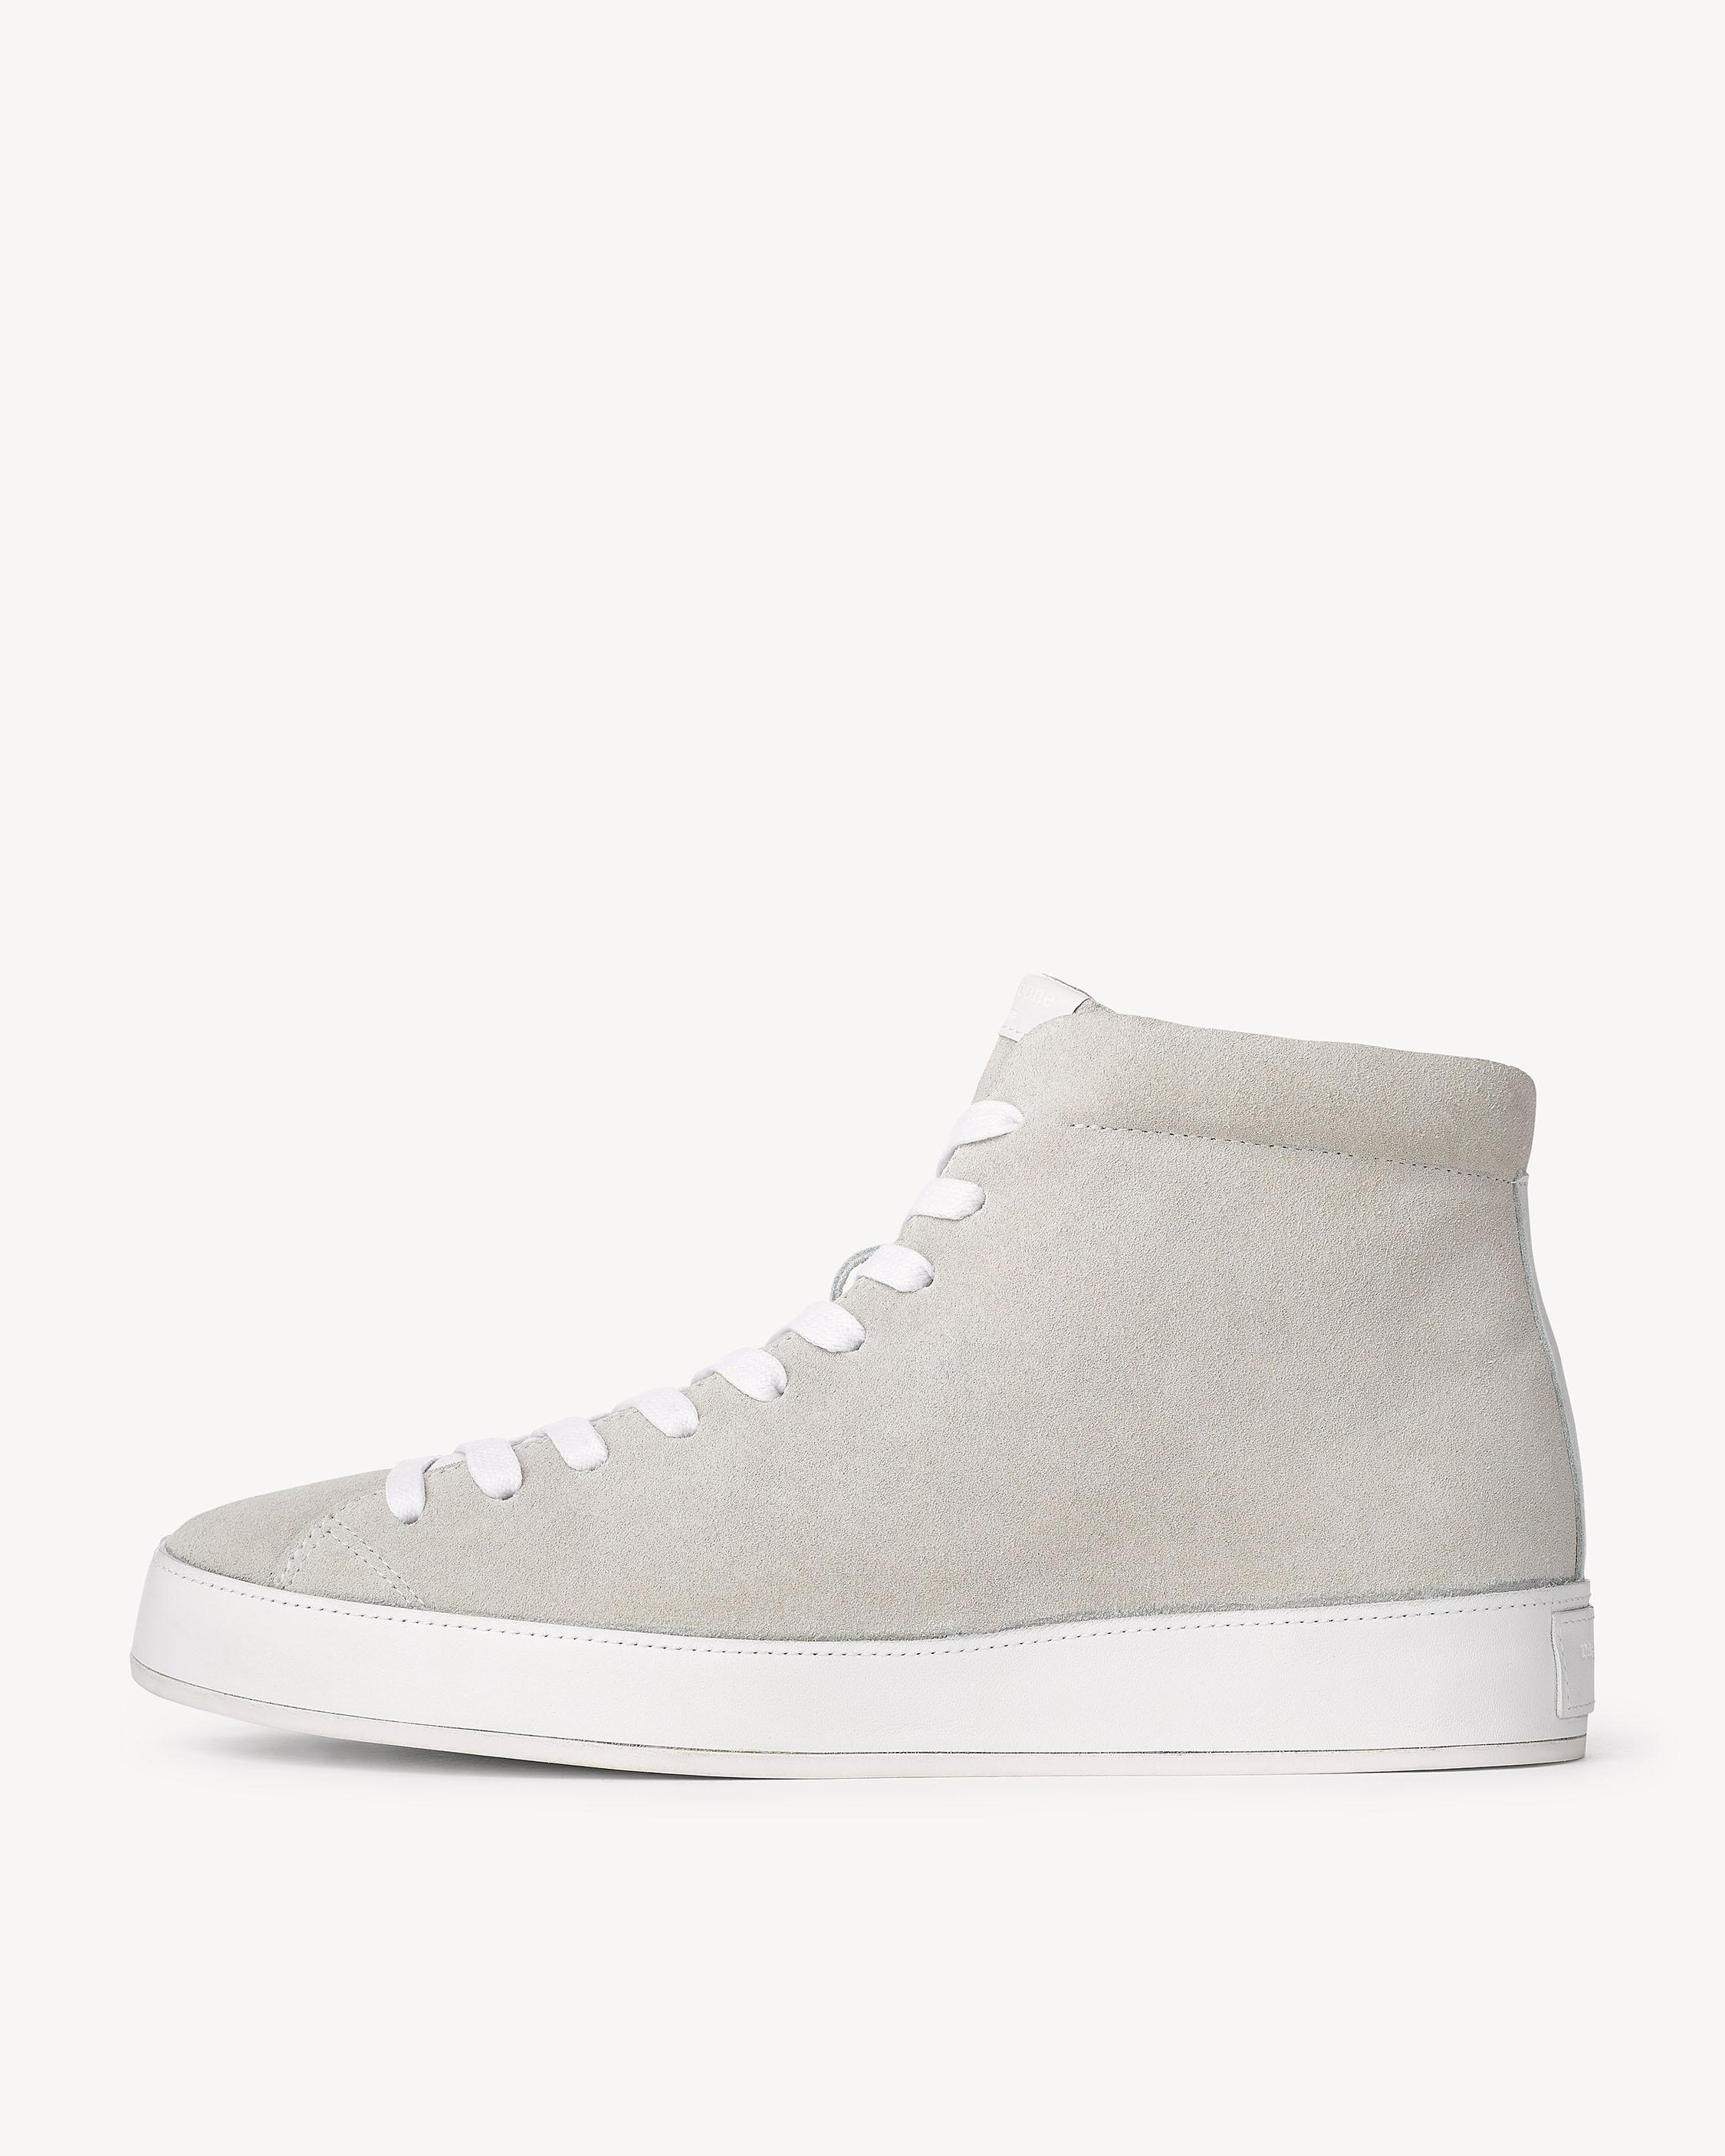 RB1 HIGH TOP